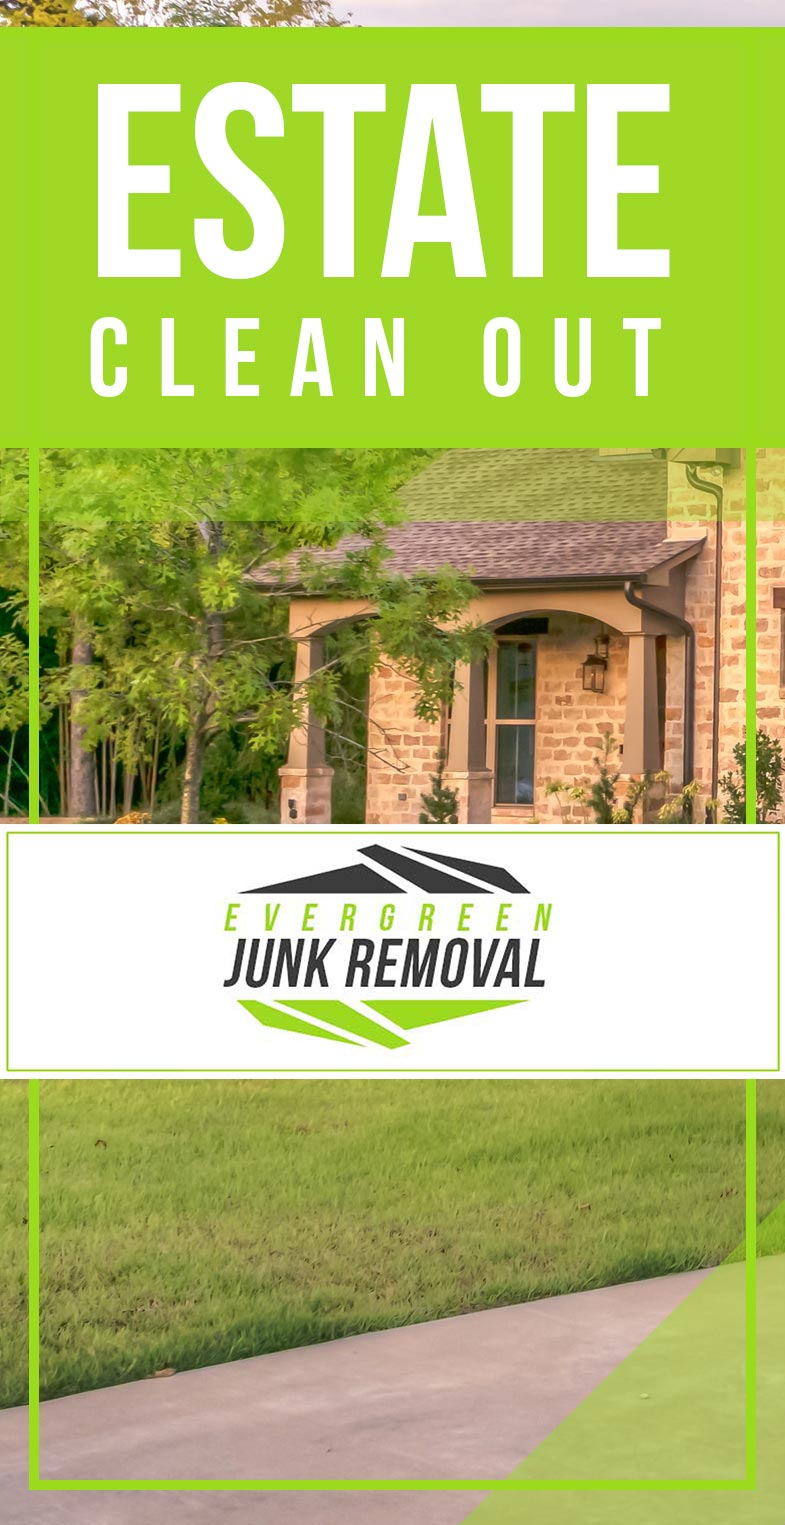 Bellaire Property Clean Out